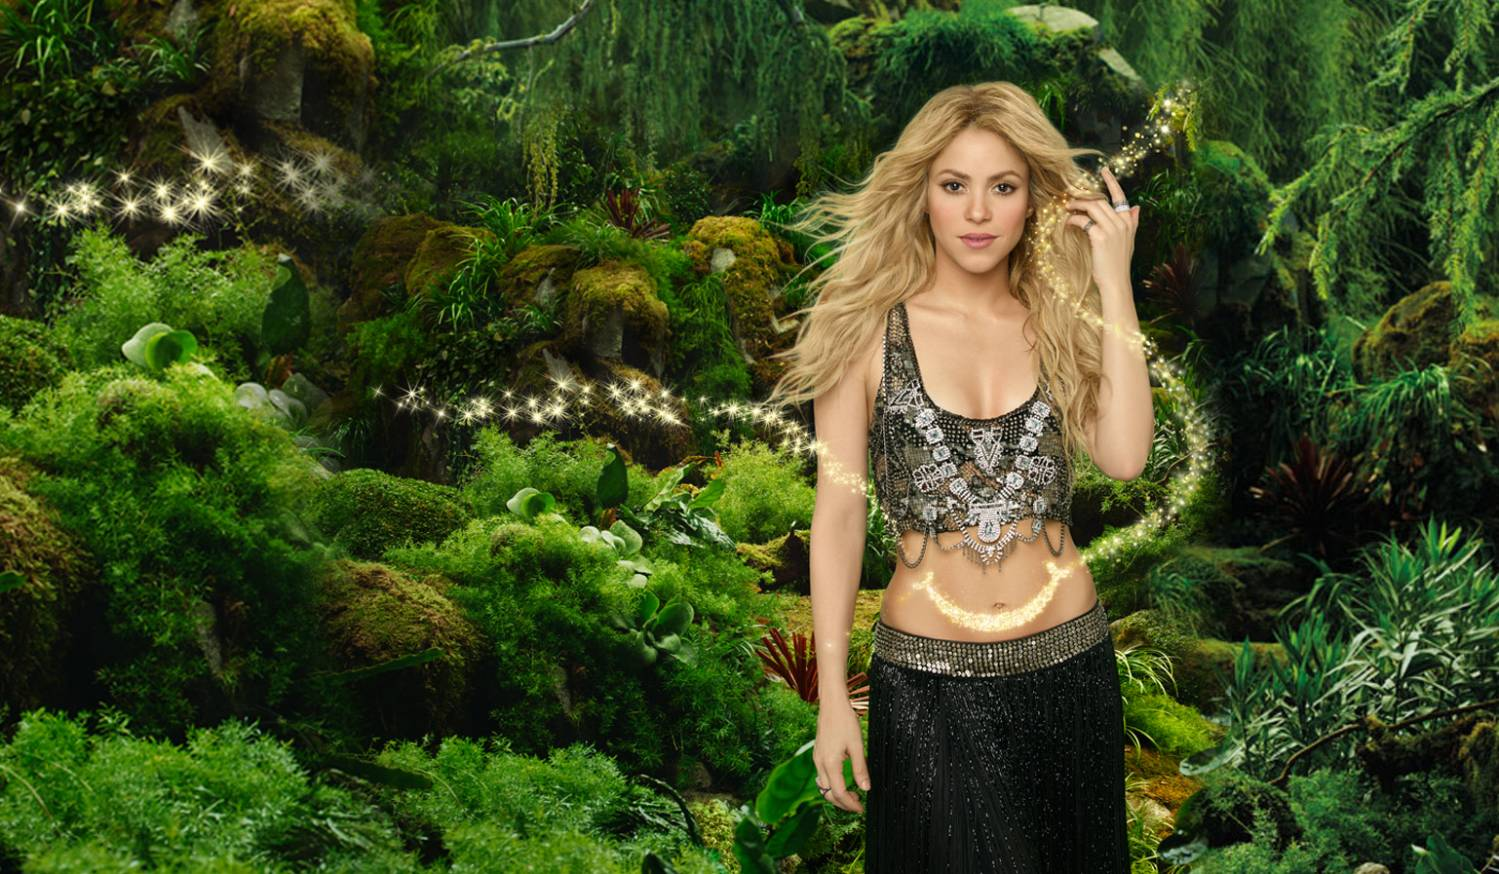 Музыка из рекламы Activia - Dare to Feel Good (Shakira)